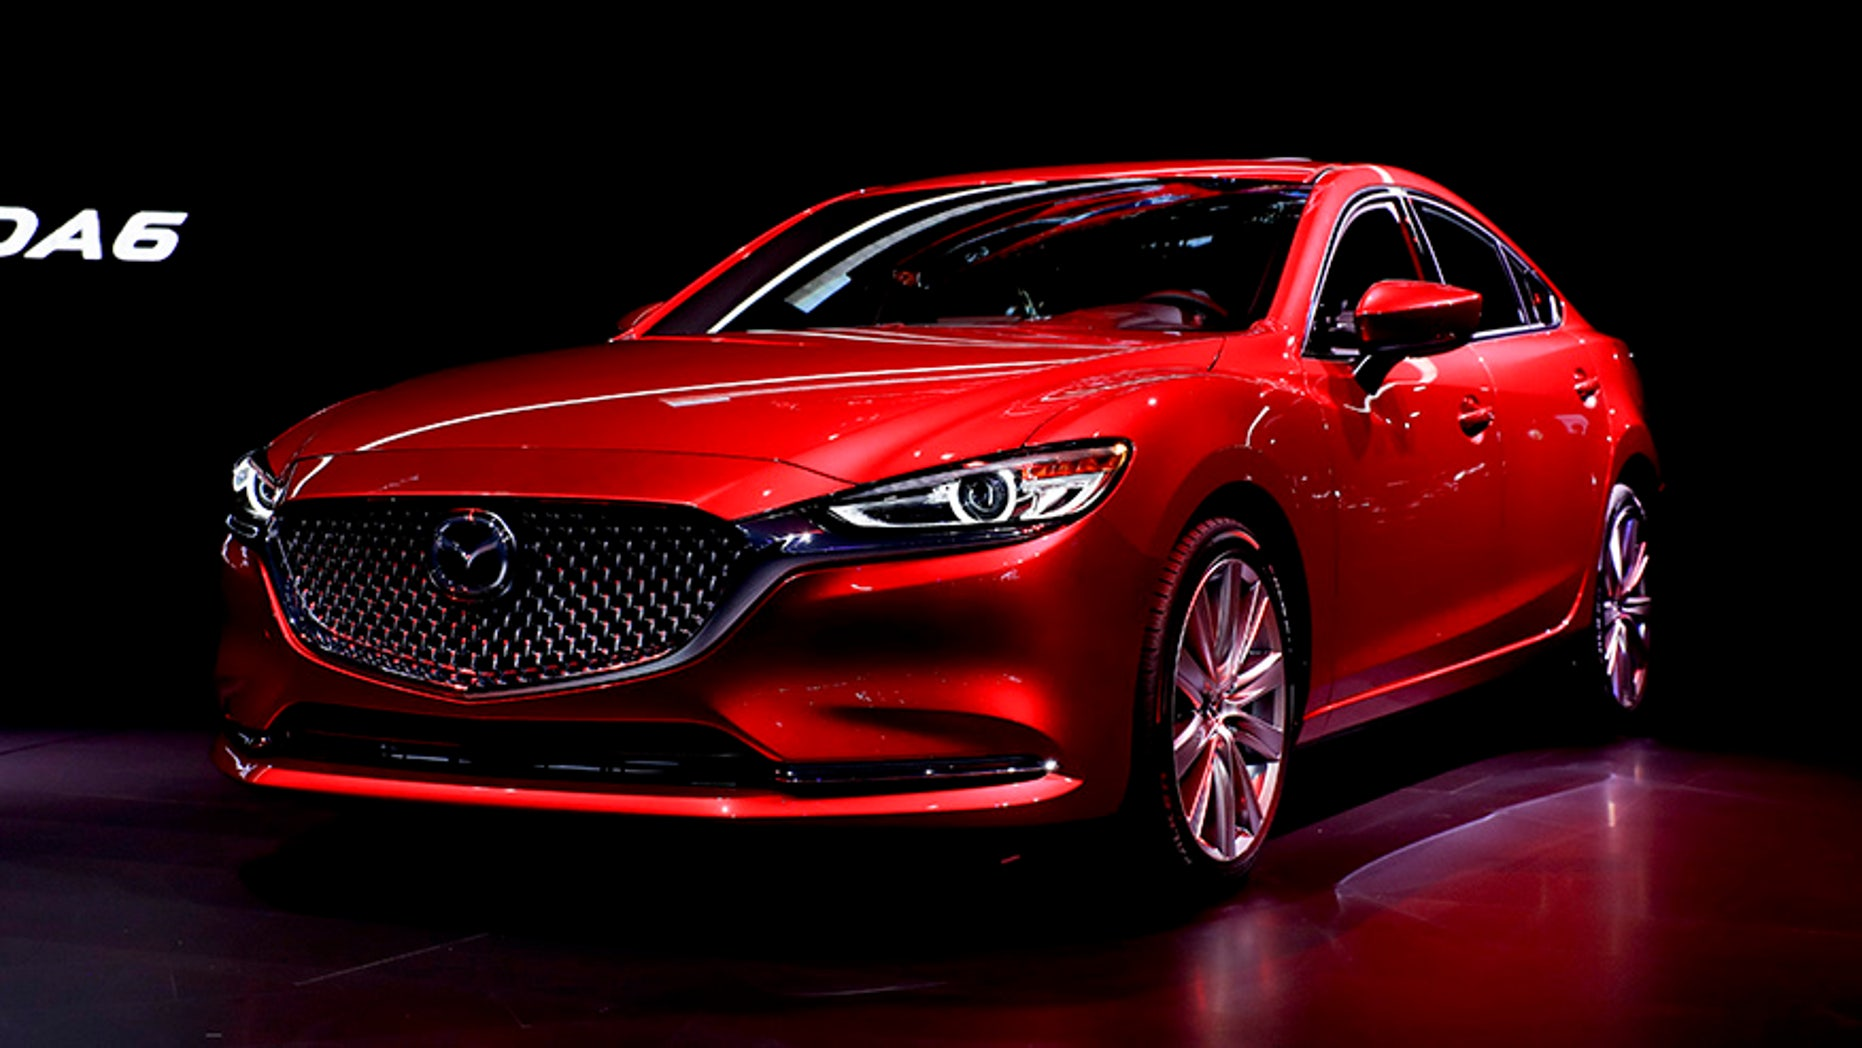 The 2018 Mazda 6 is introduced during the Los Angeles Auto Show, Wednesday, Nov. 29, 2017, in Los Angeles. (AP Photo/Chris Carlson)